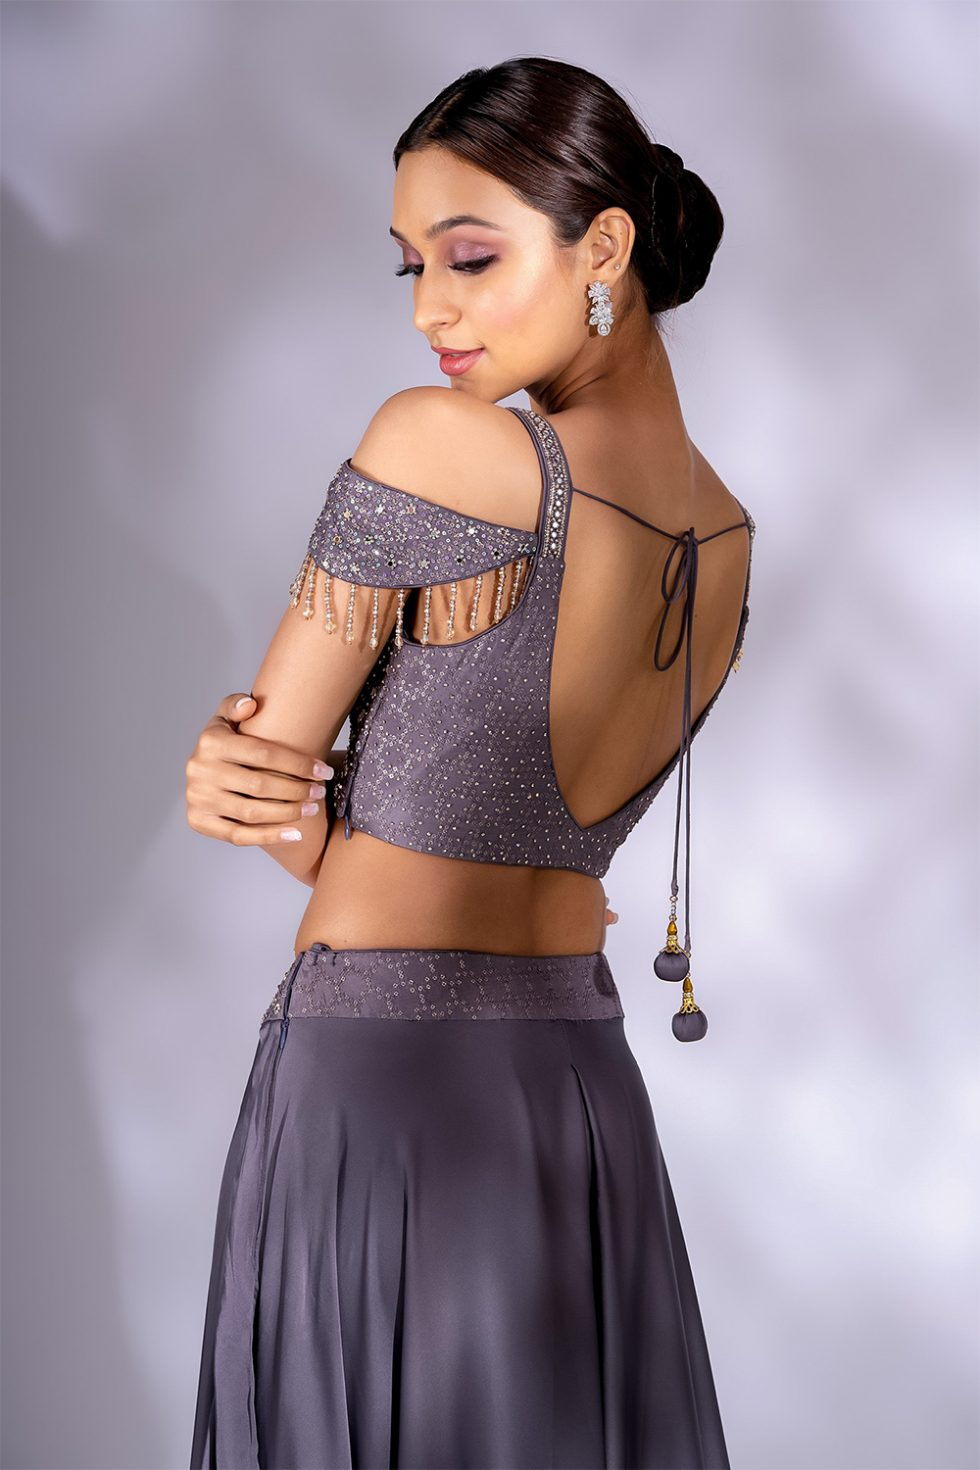 Dusty grey wide palazzo pant set with mirror work blouse, belt and cold shoulder with tassels paired with a matching stole dupatta.